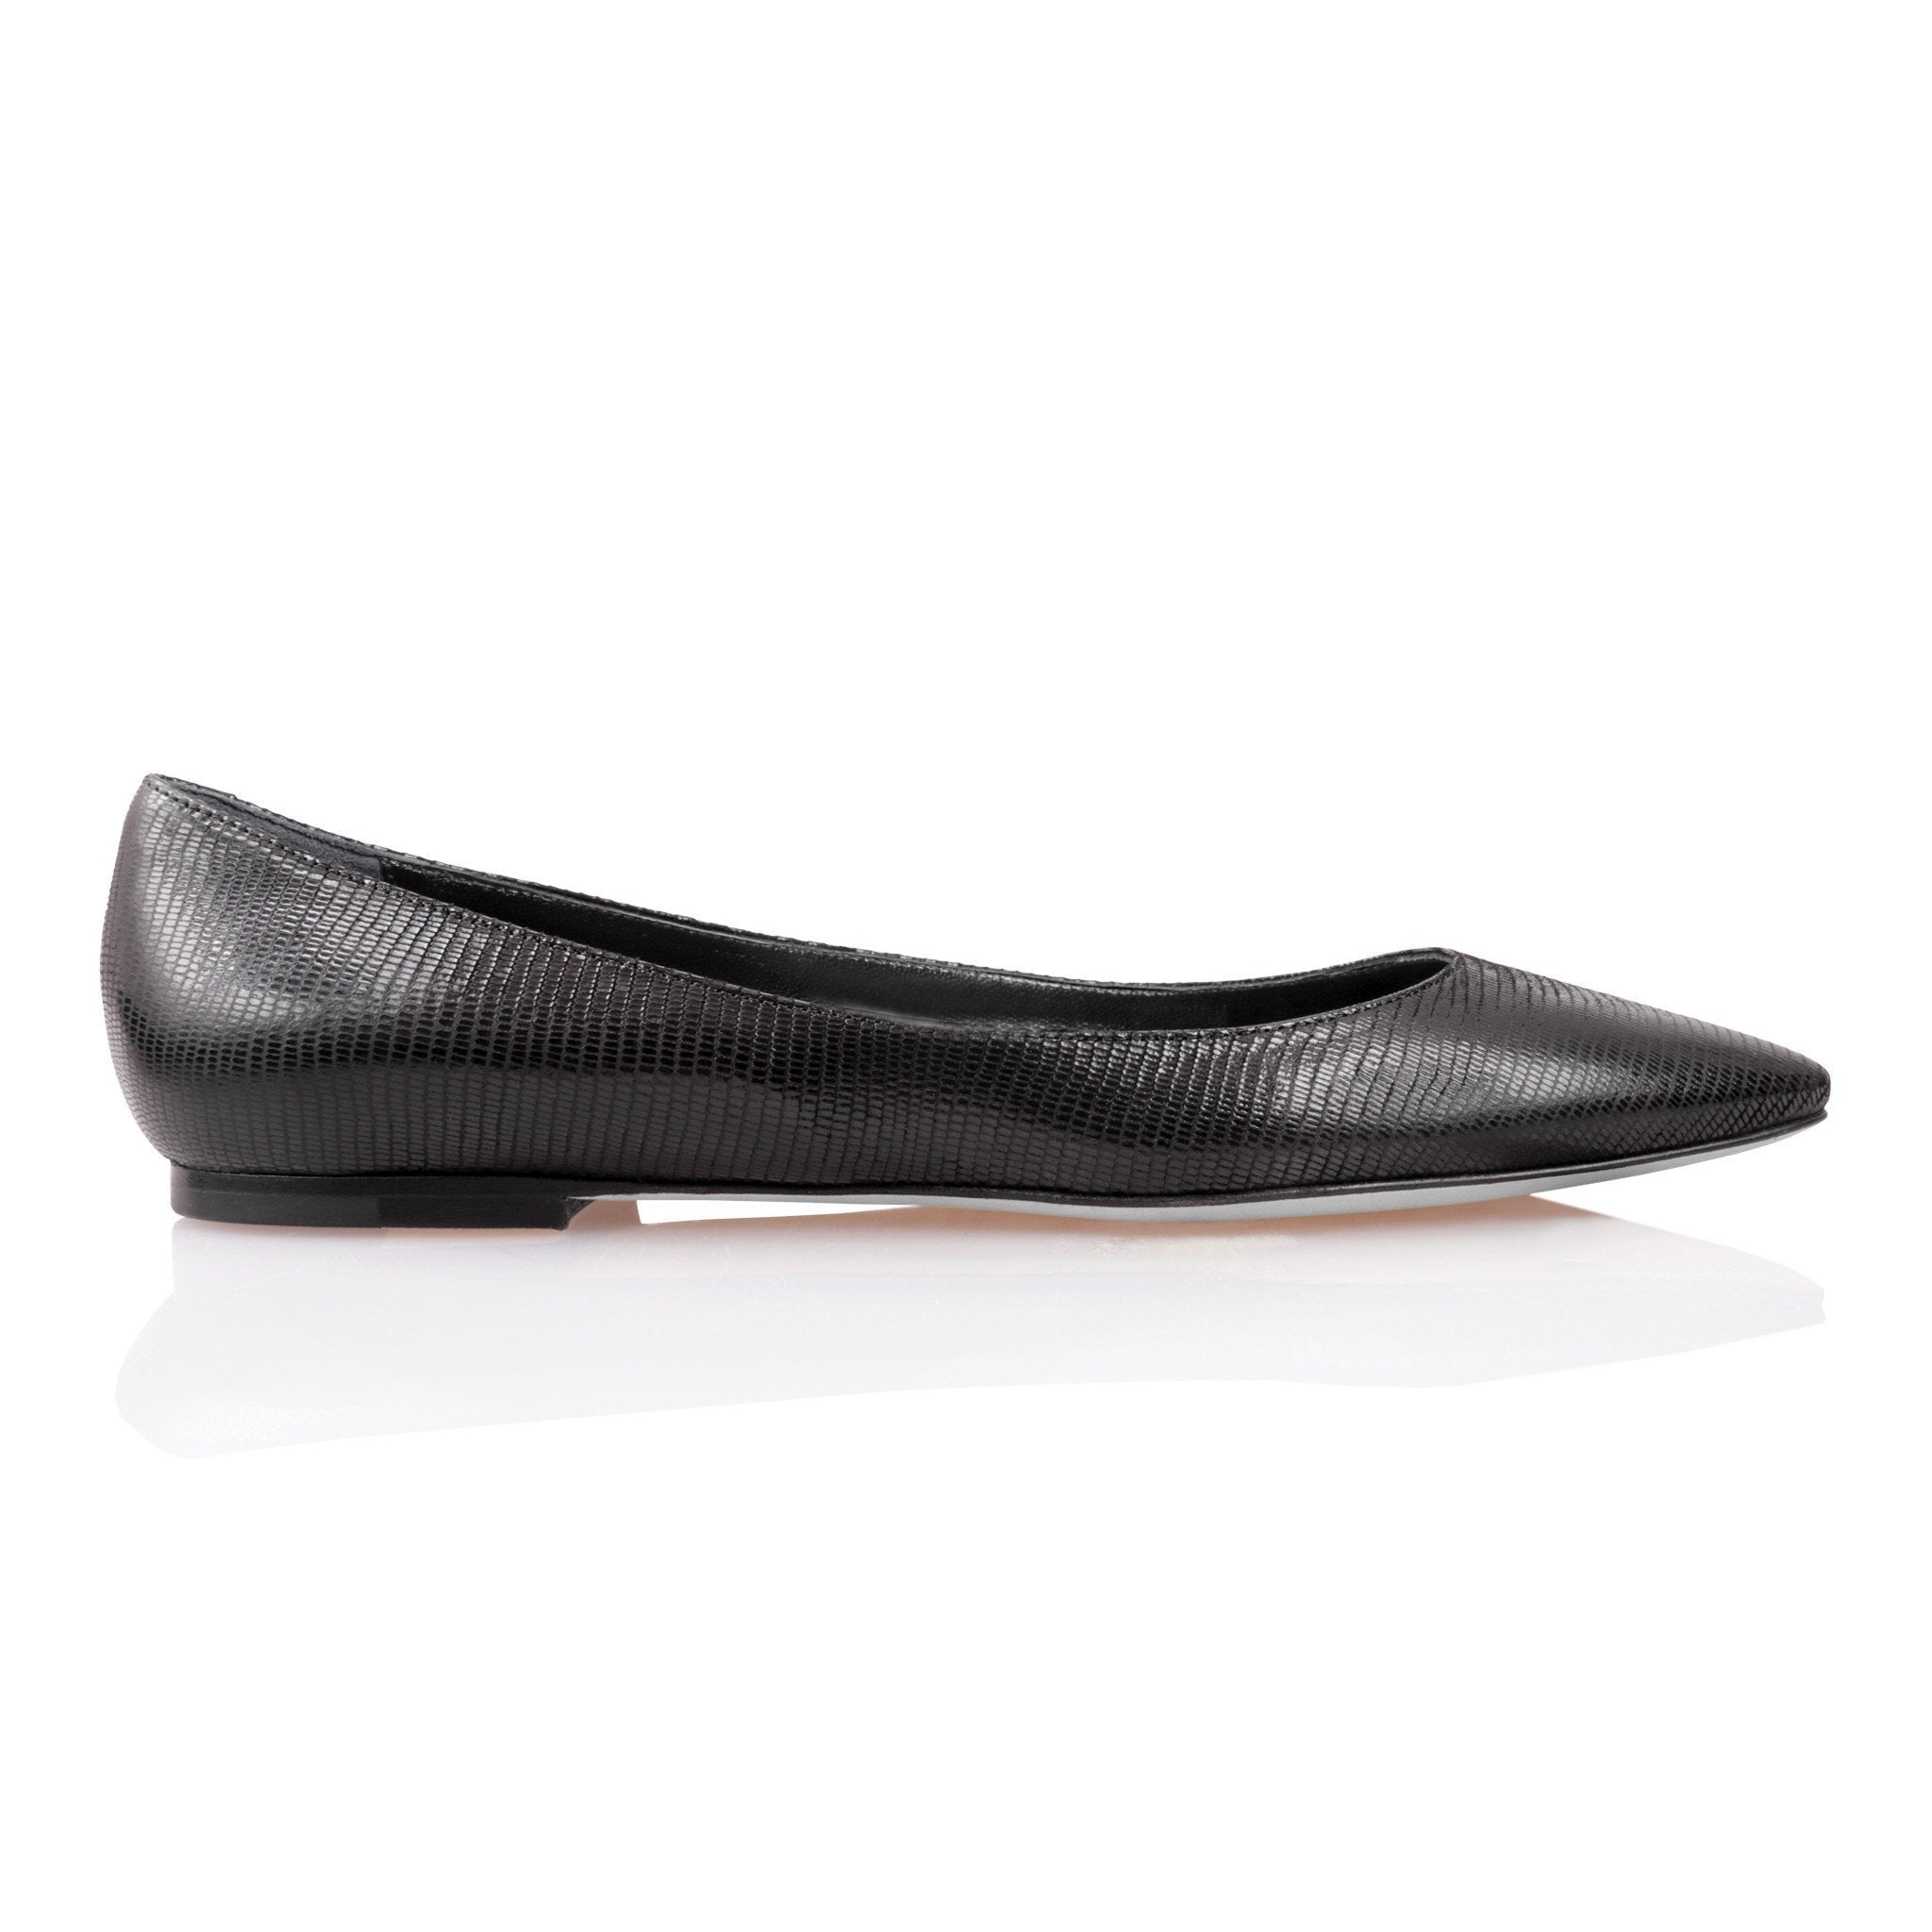 SIENA - Varanus Nero, VIAJIYU - Women's Hand Made Sustainable Luxury Shoes. Made in Italy. Made to Order.